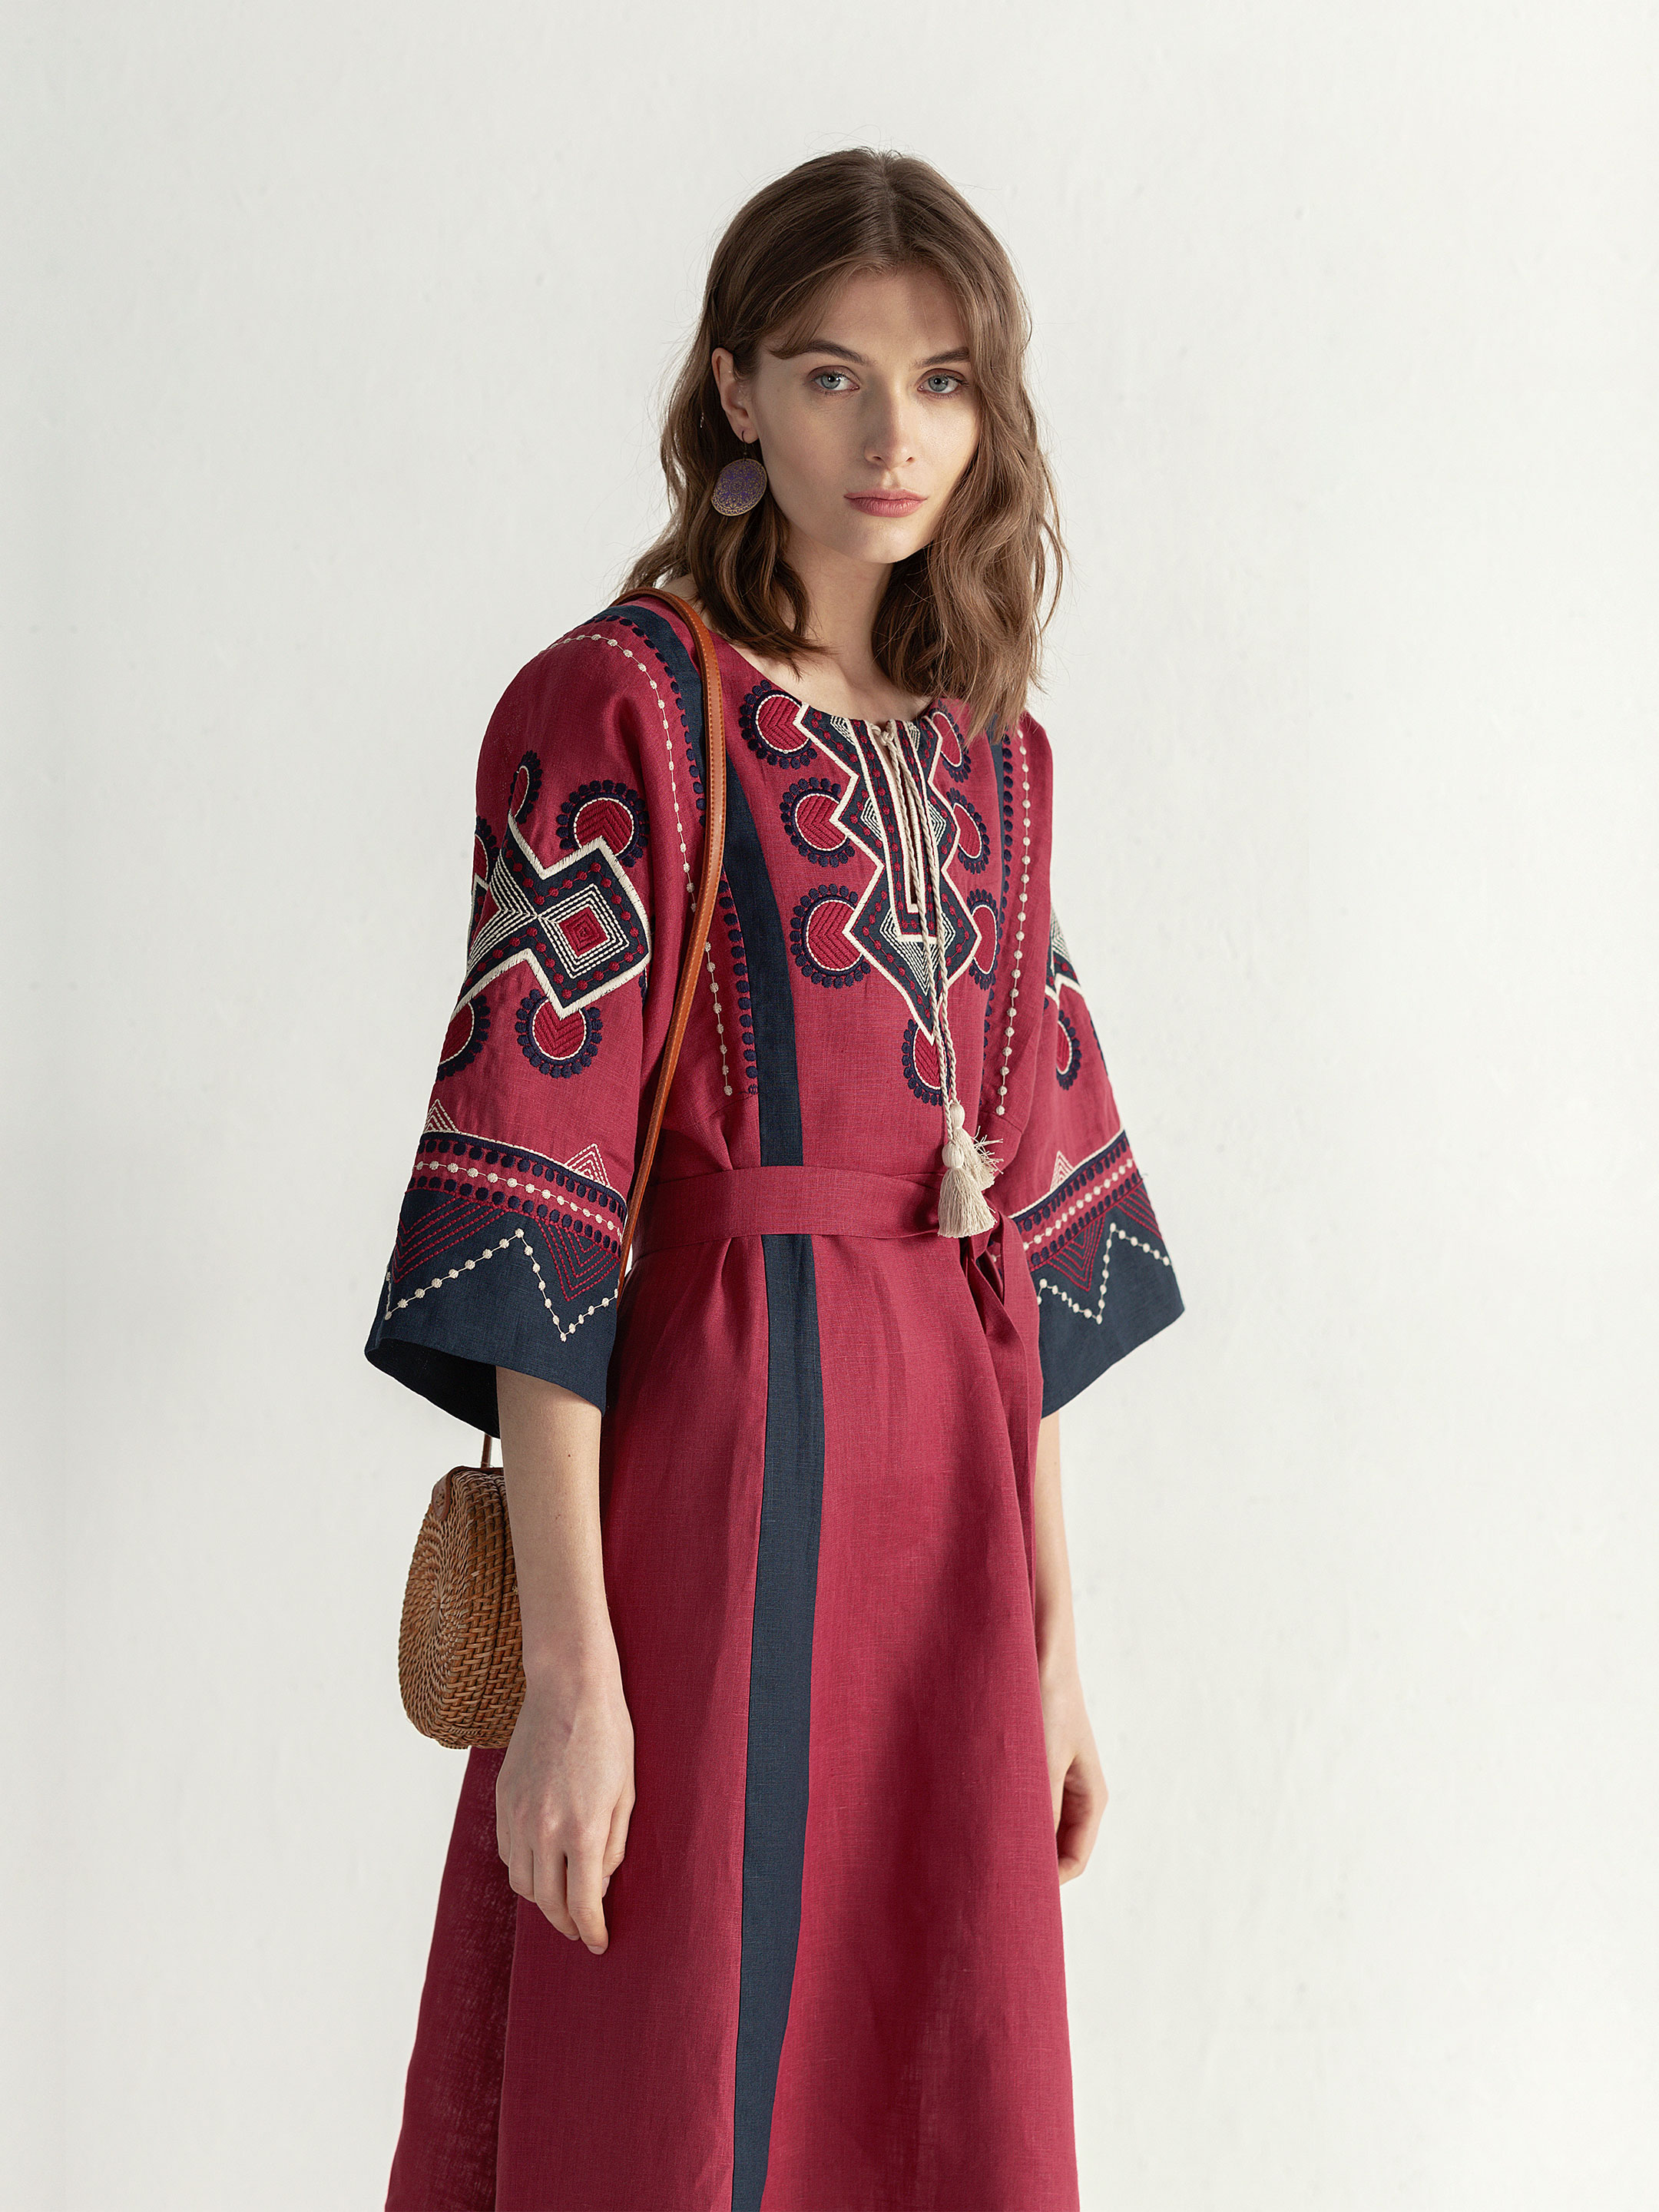 Boho dress of free robe with embroidery Temple2 3